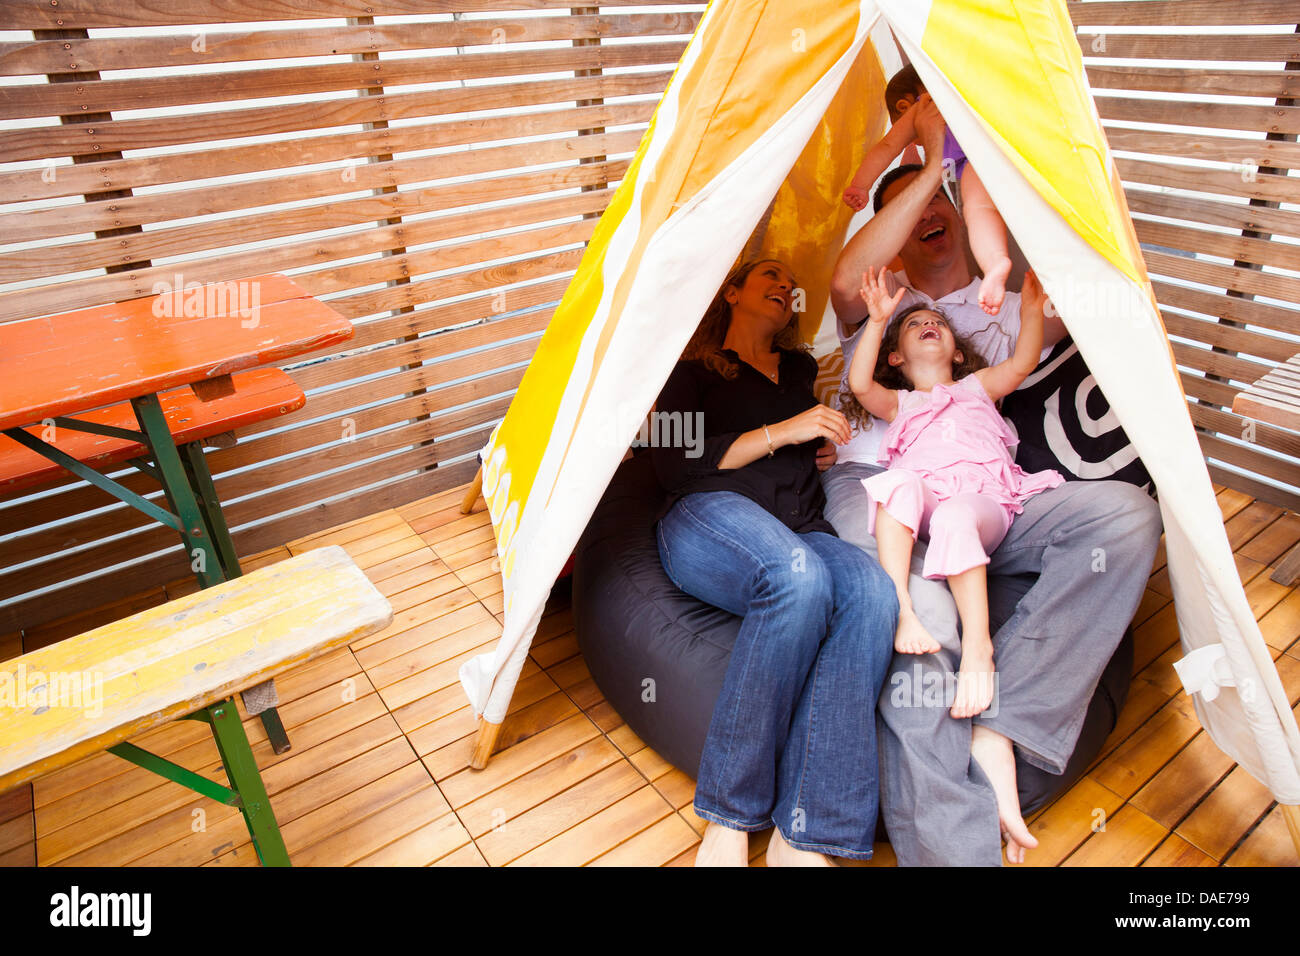 Family playing in tent - Stock Image